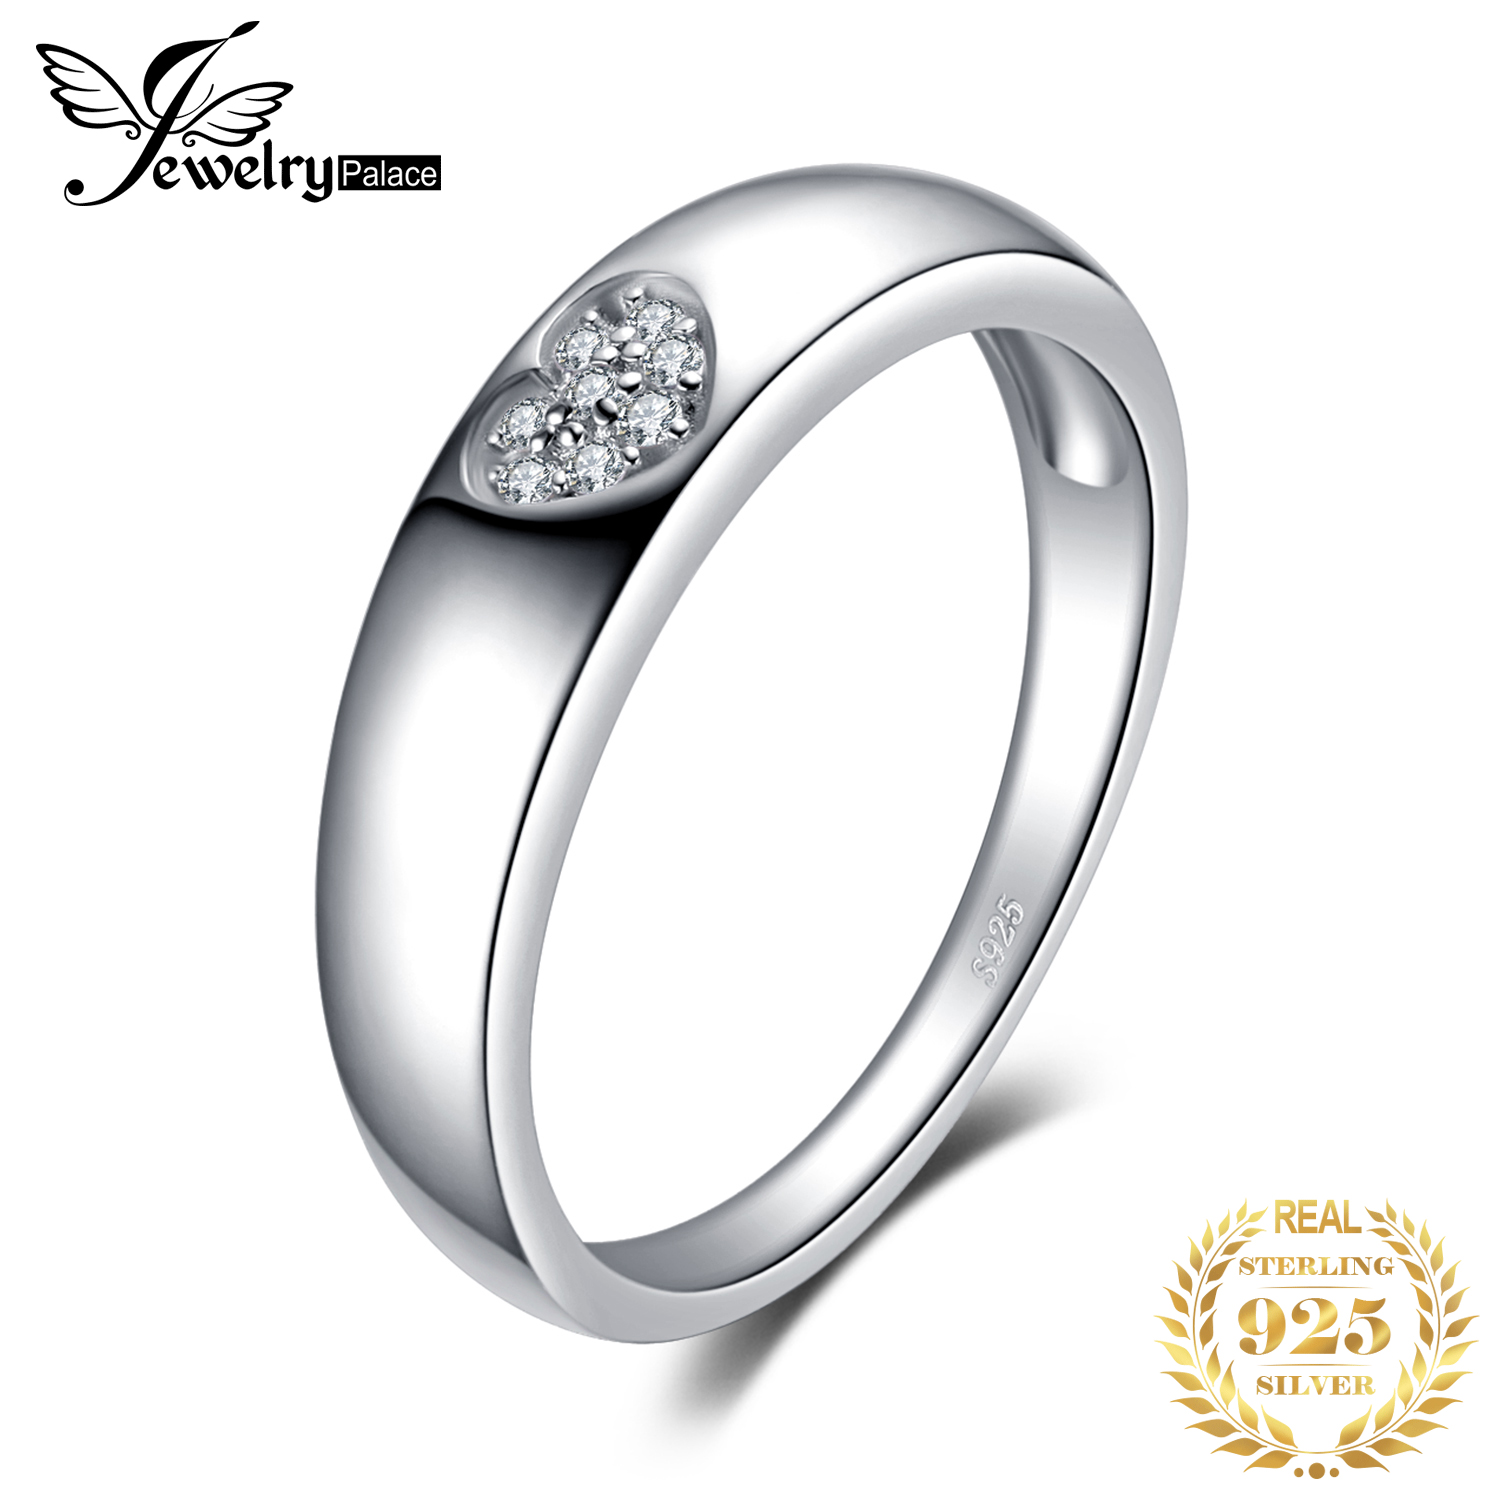 JPalace Heart CZ Wedding Rings 925 Sterling Silver Rings for Women Anniversary Wedding Bands Silver 925 Jewelry Fine Jewelry